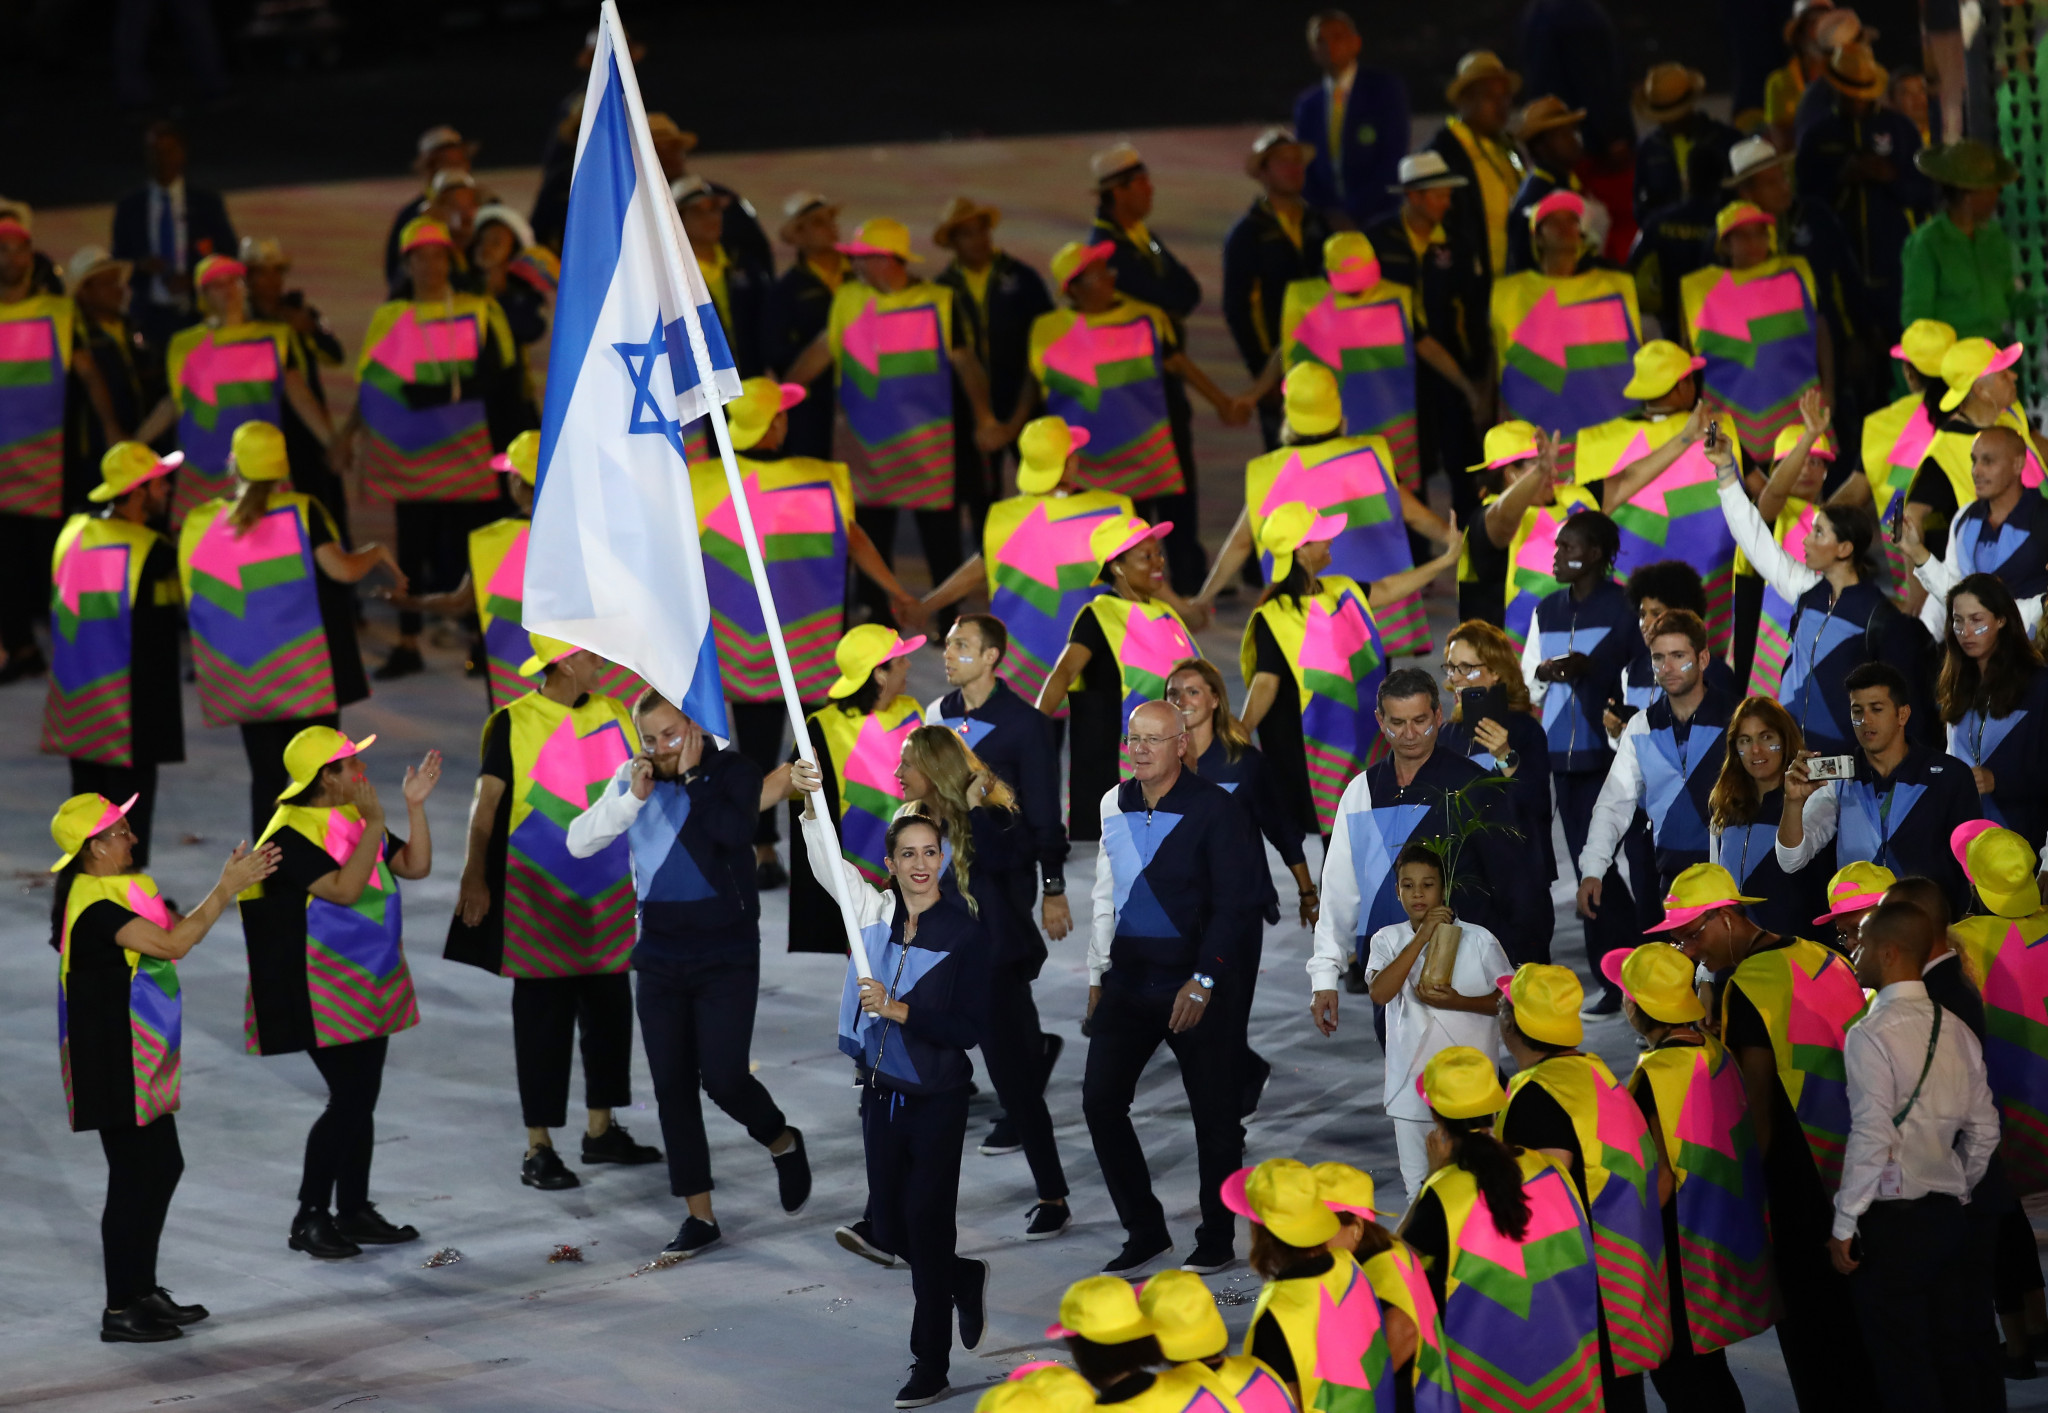 Israeli participation at events in Islamic countries who do not recognise them diplomatically has been a particular problem ©Getty Images